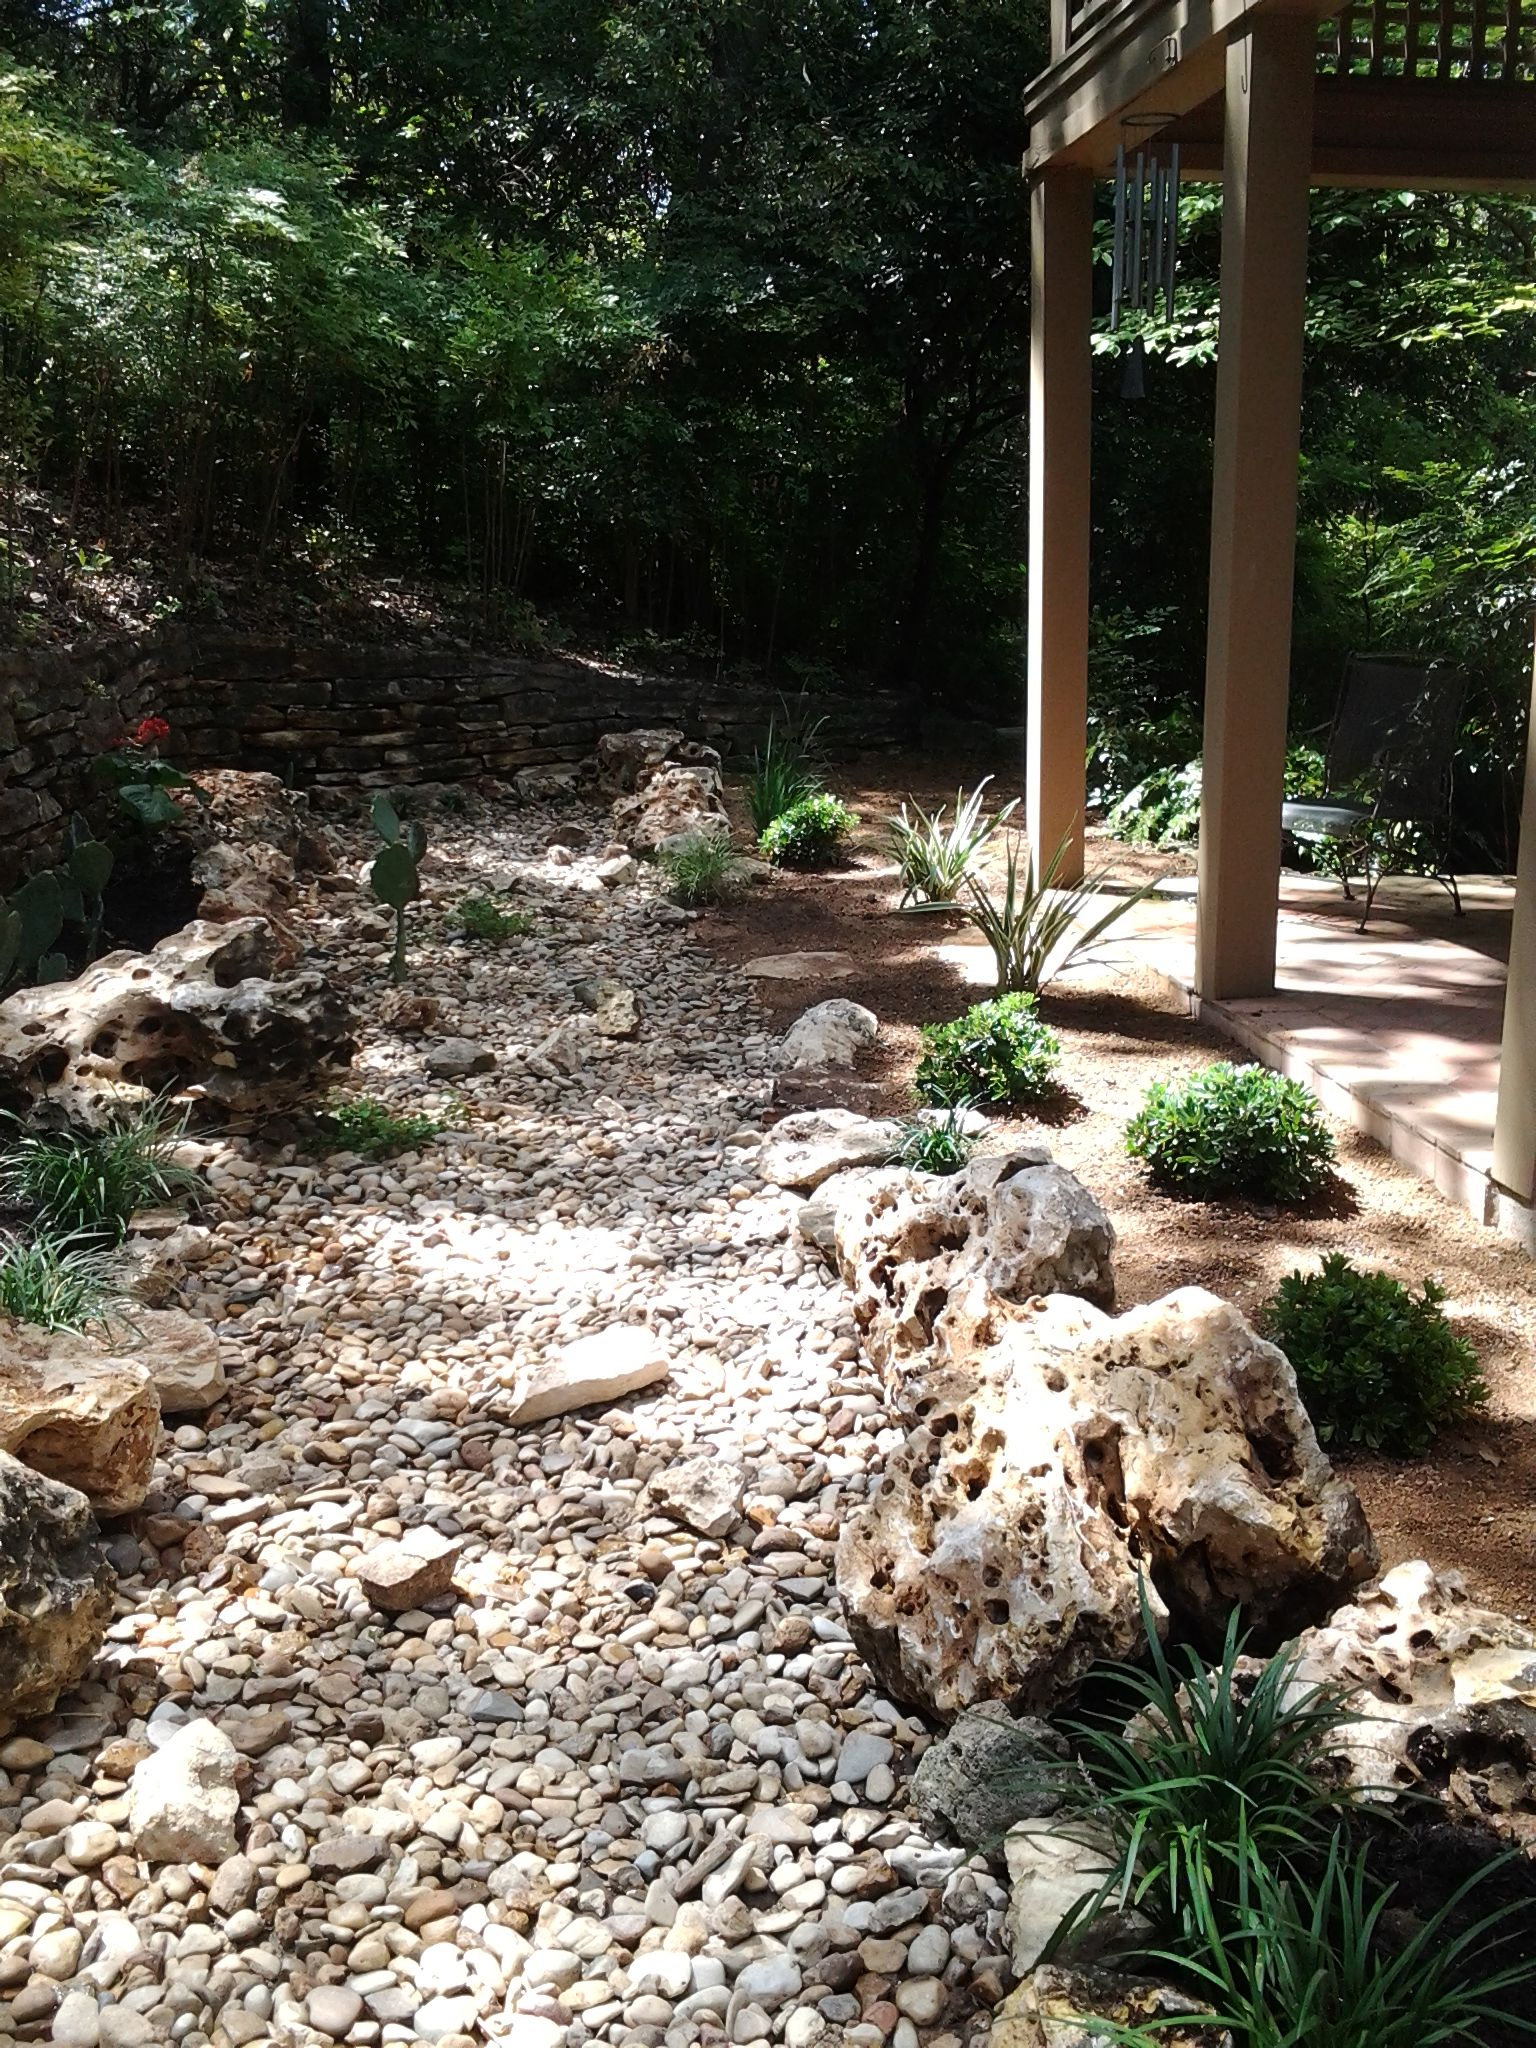 A dry creek bed in Central Austin. This is complete with a